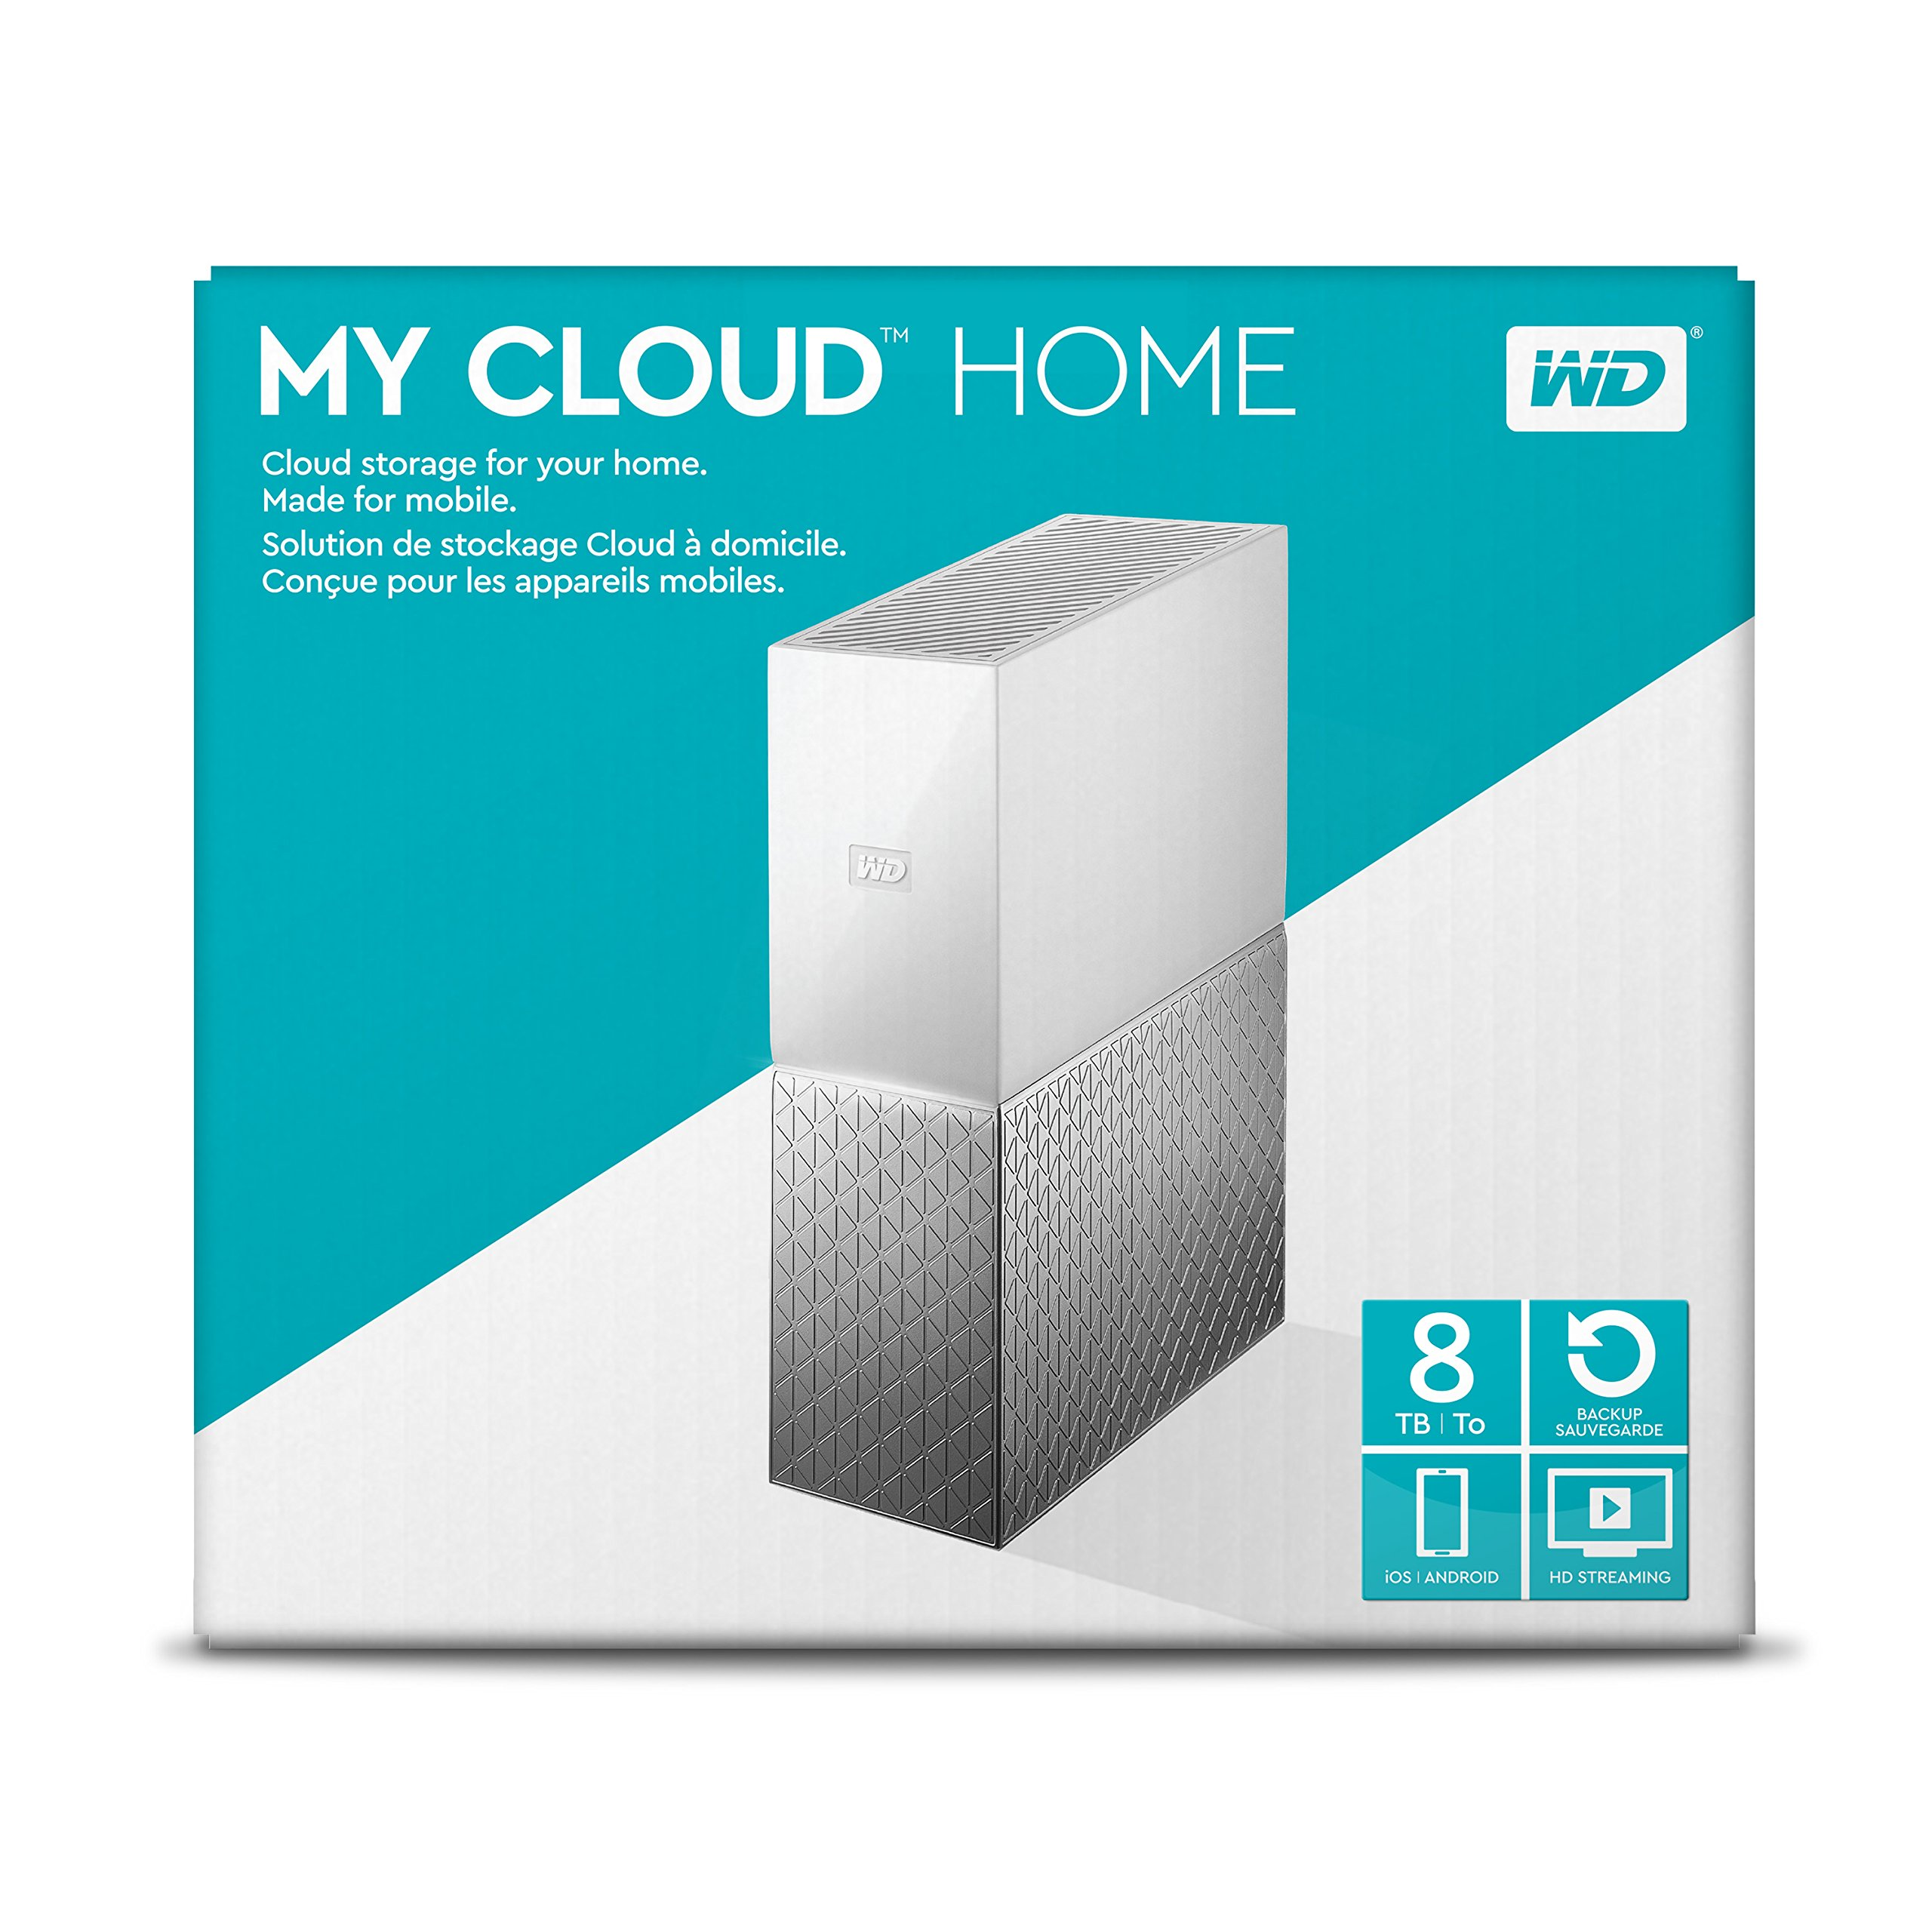 WD 8TB My Cloud Home Personal Cloud Storage - WDBVXC0080HWT-NESN by Western Digital (Image #6)